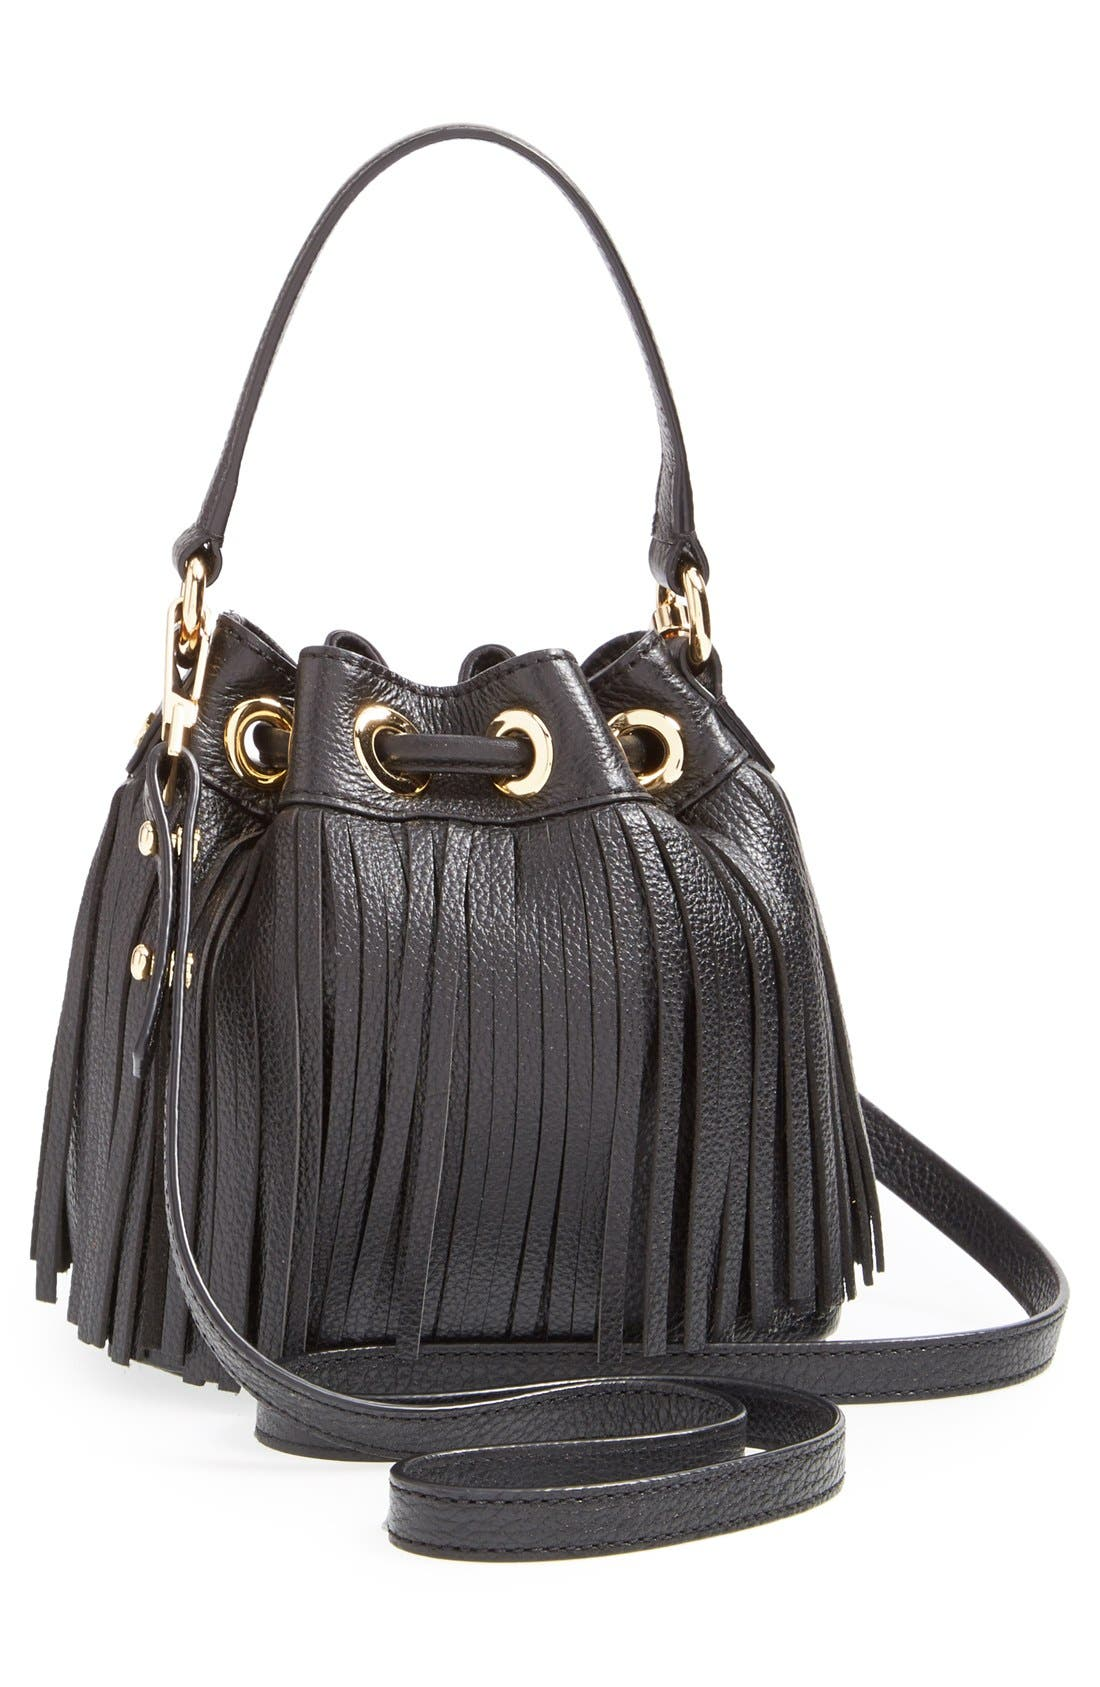 MILLY, 'Small Essex' Fringed Leather Bucket Bag, Alternate thumbnail 4, color, 001